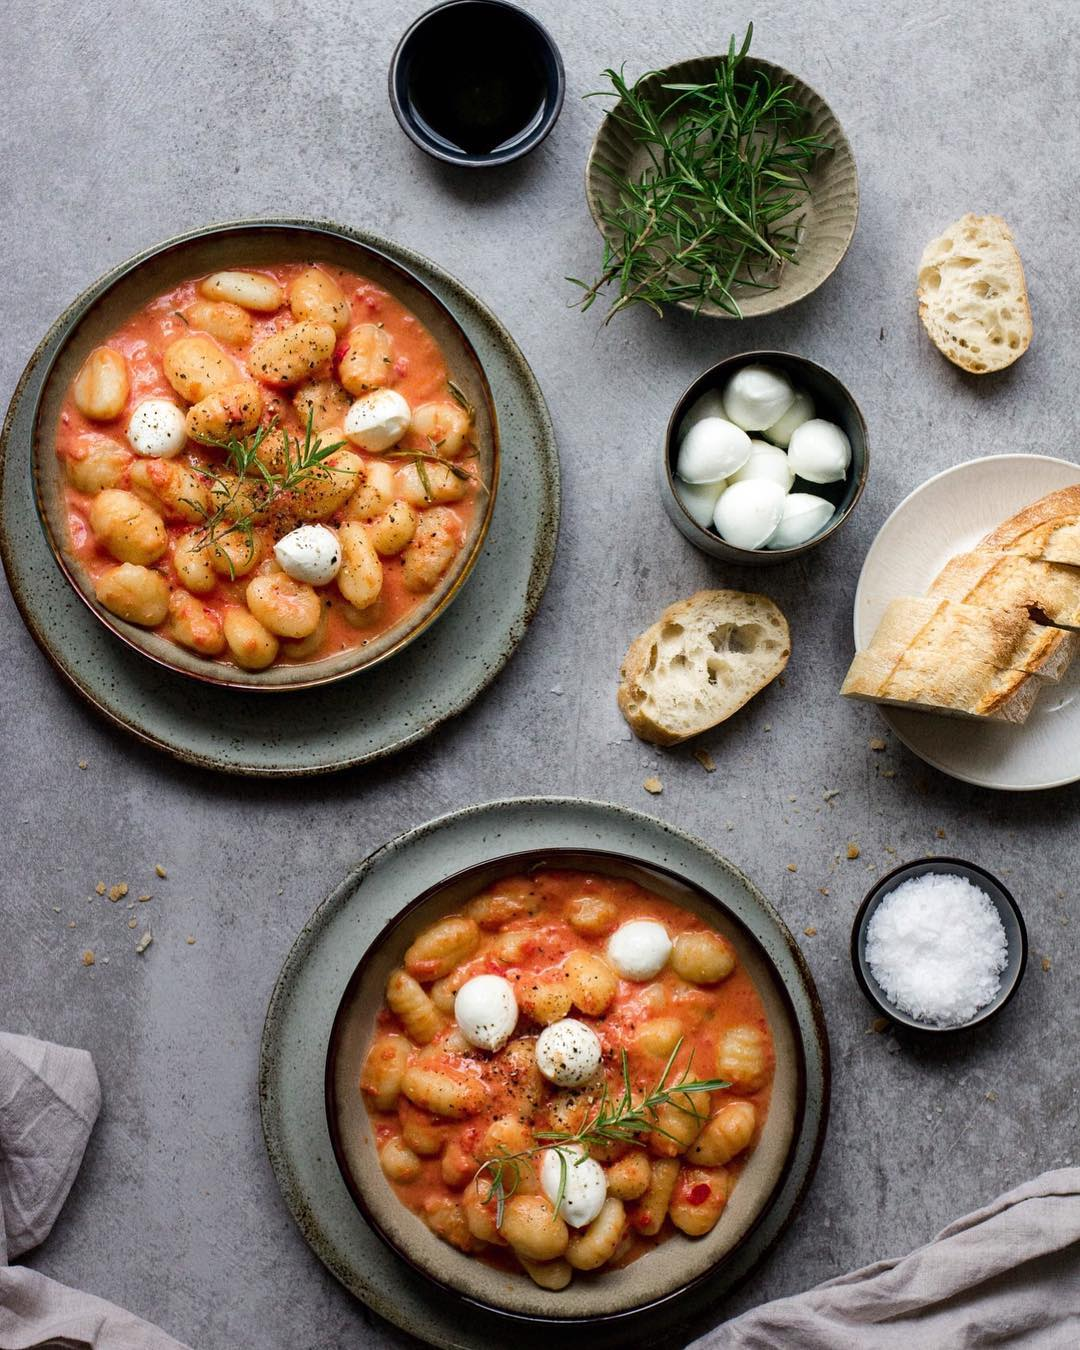 Gnocchi with infused rosamary tomato sauce